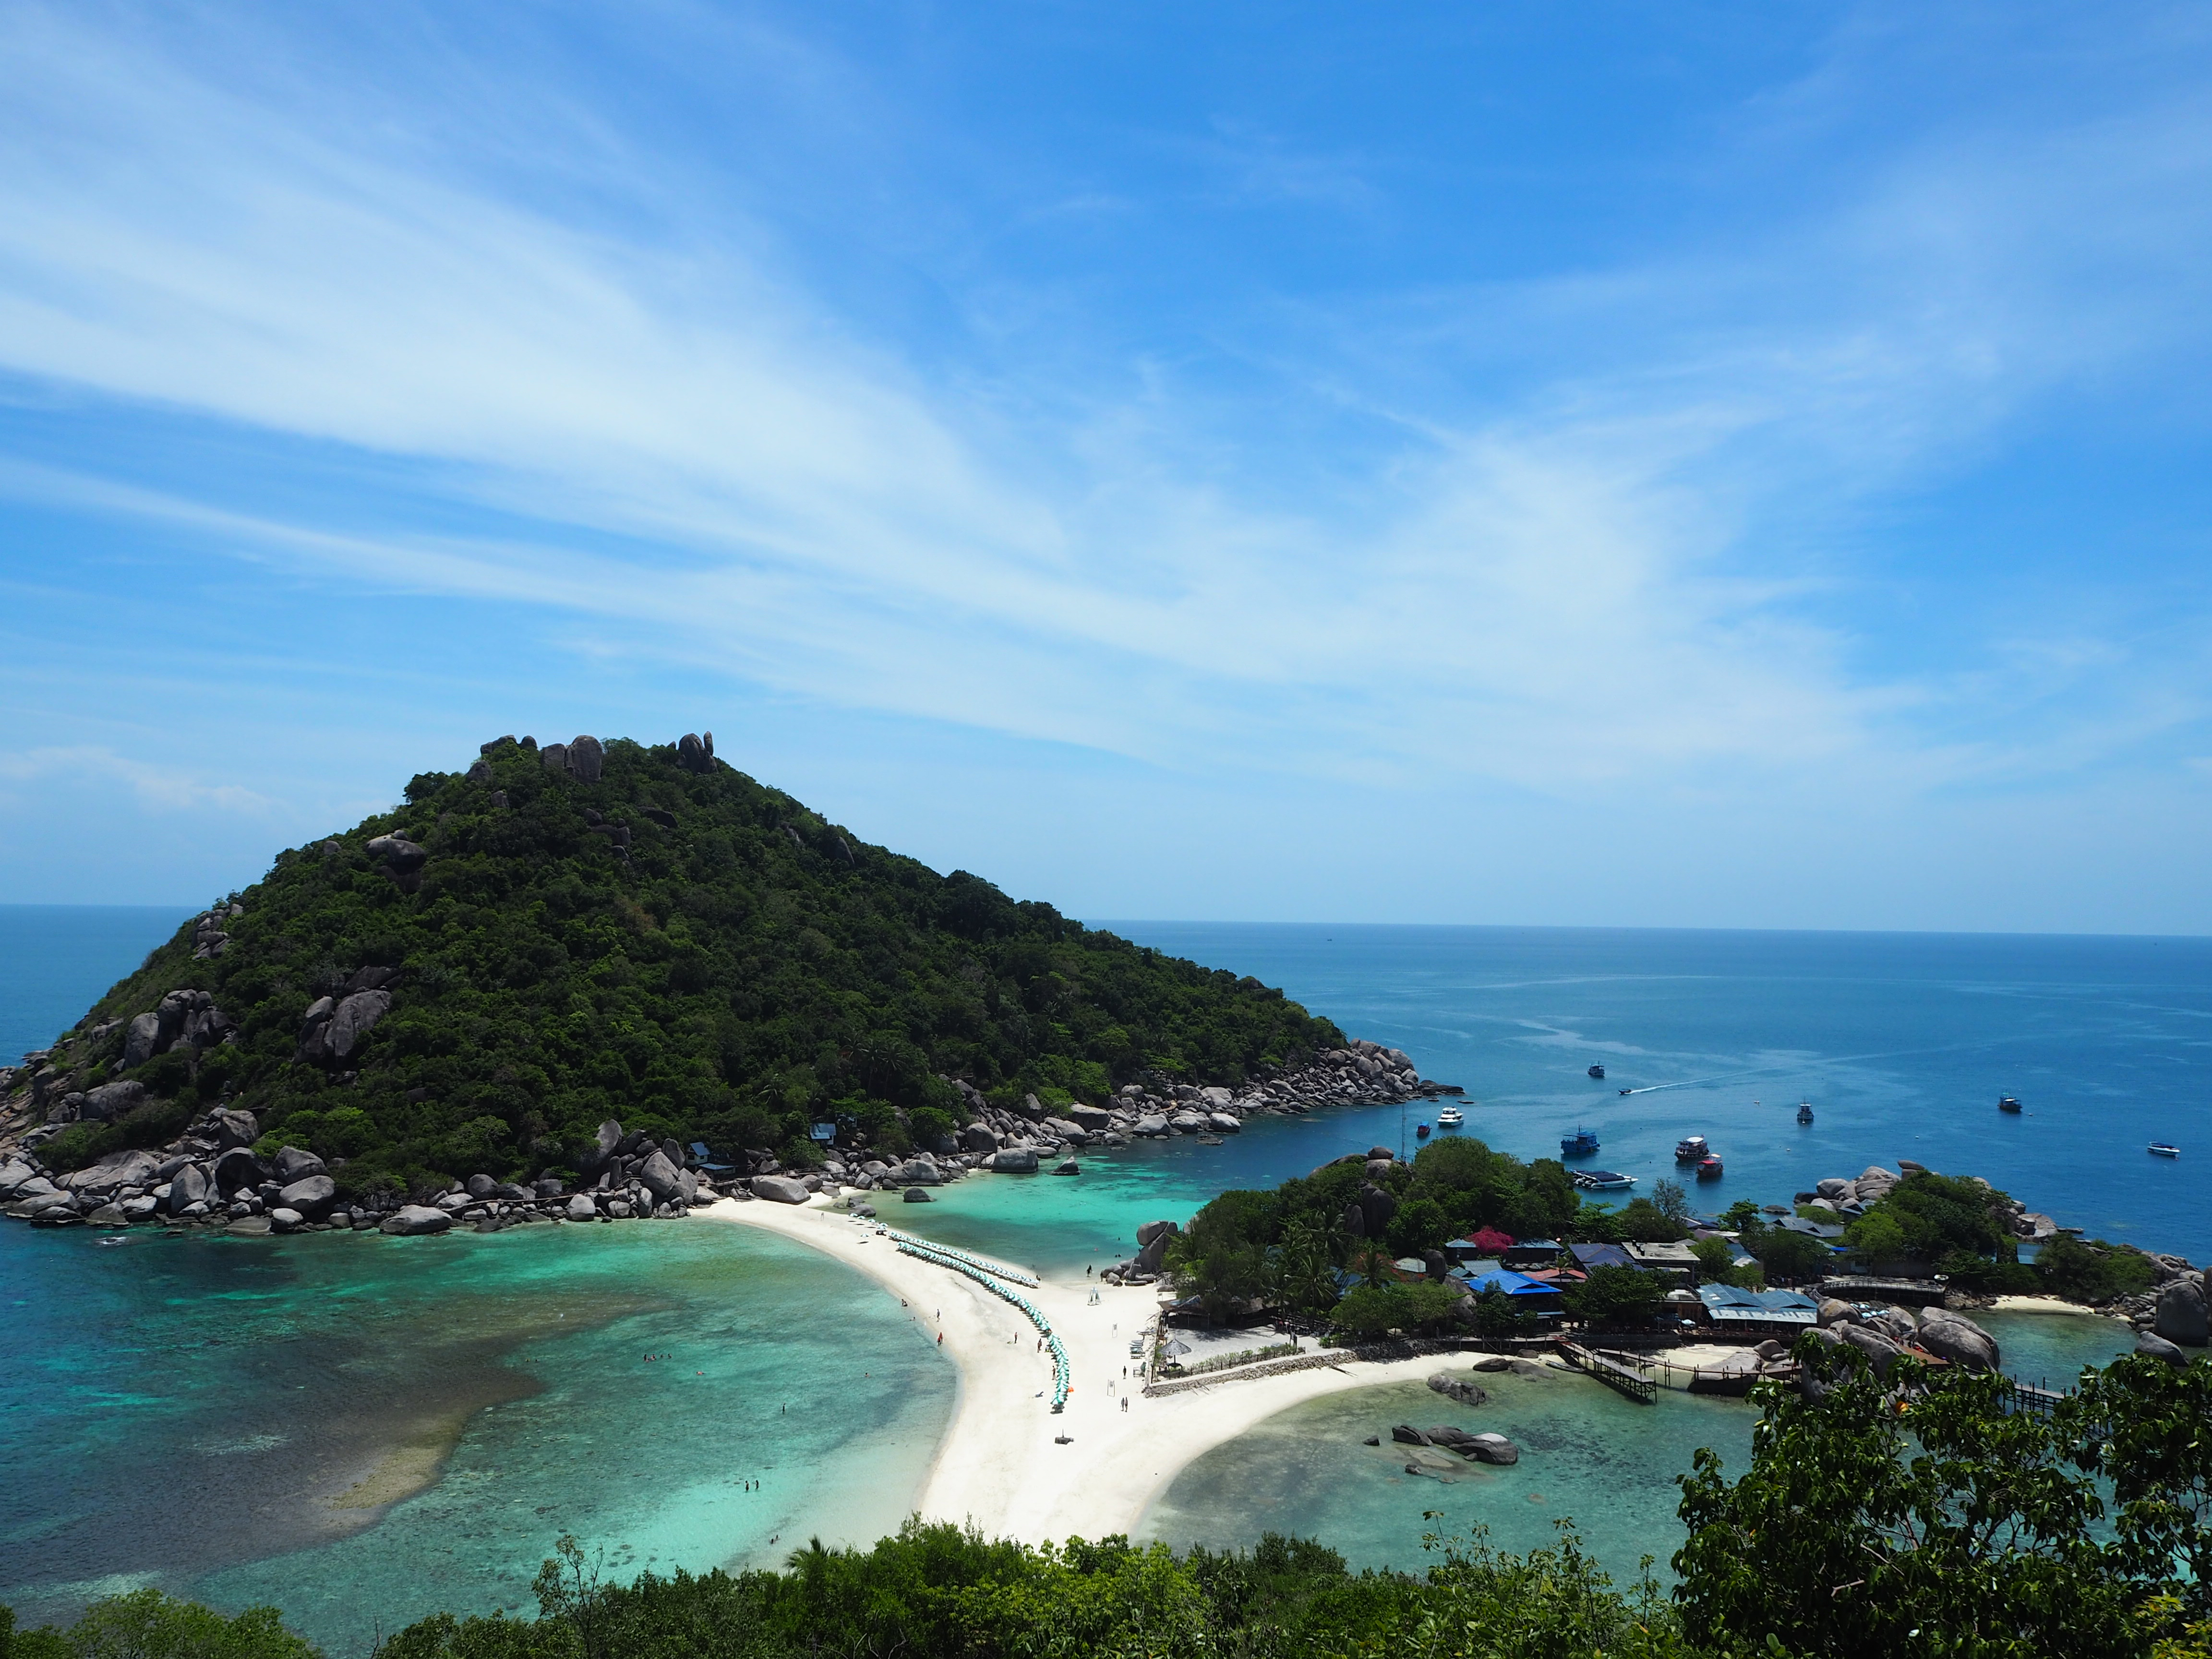 Koh Nang-Yuan from View Point